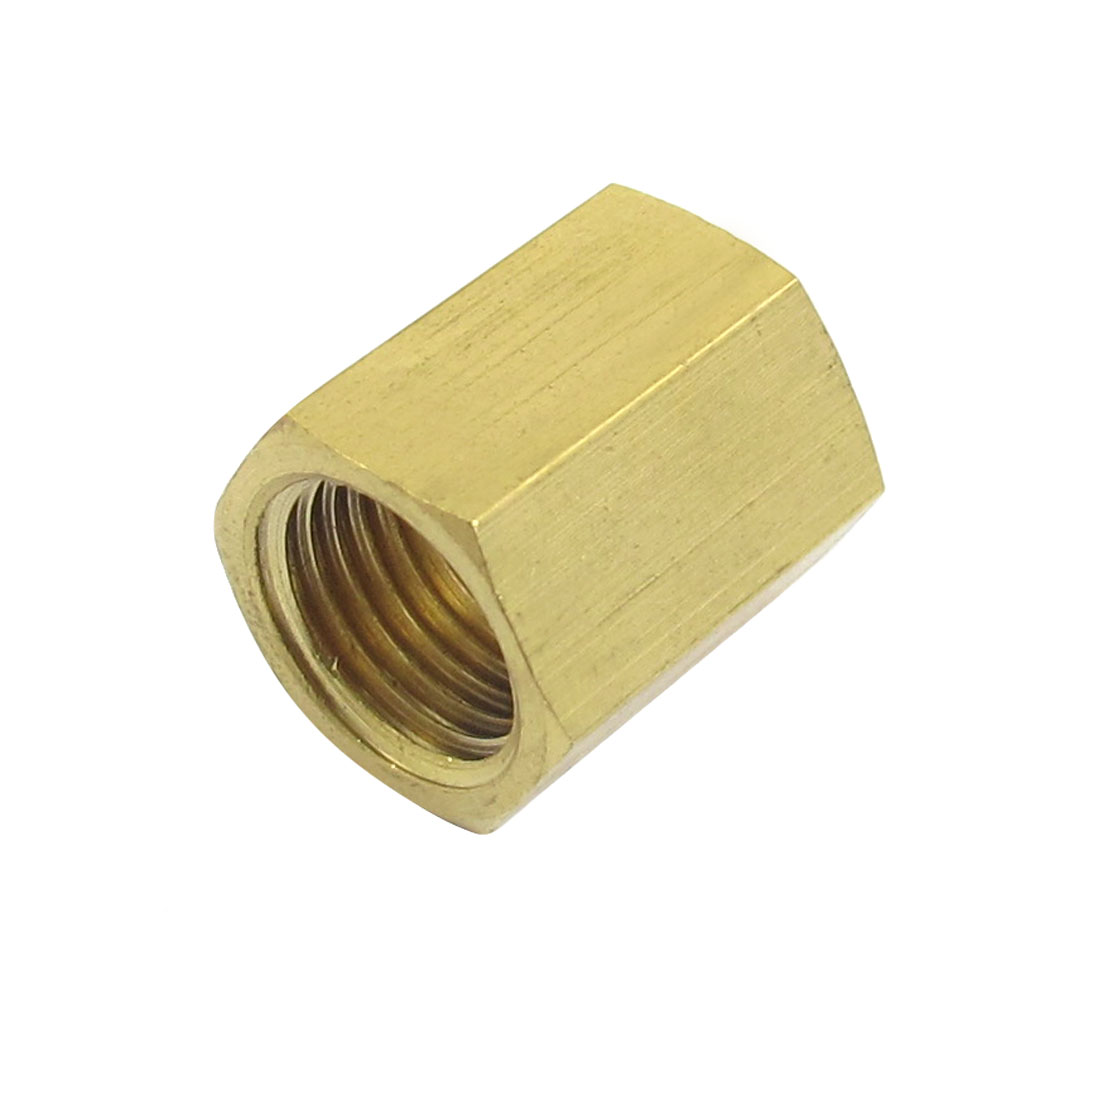 12mm Female Thread Dia Hex Rod Coupling Straight Connector Brass Fitting